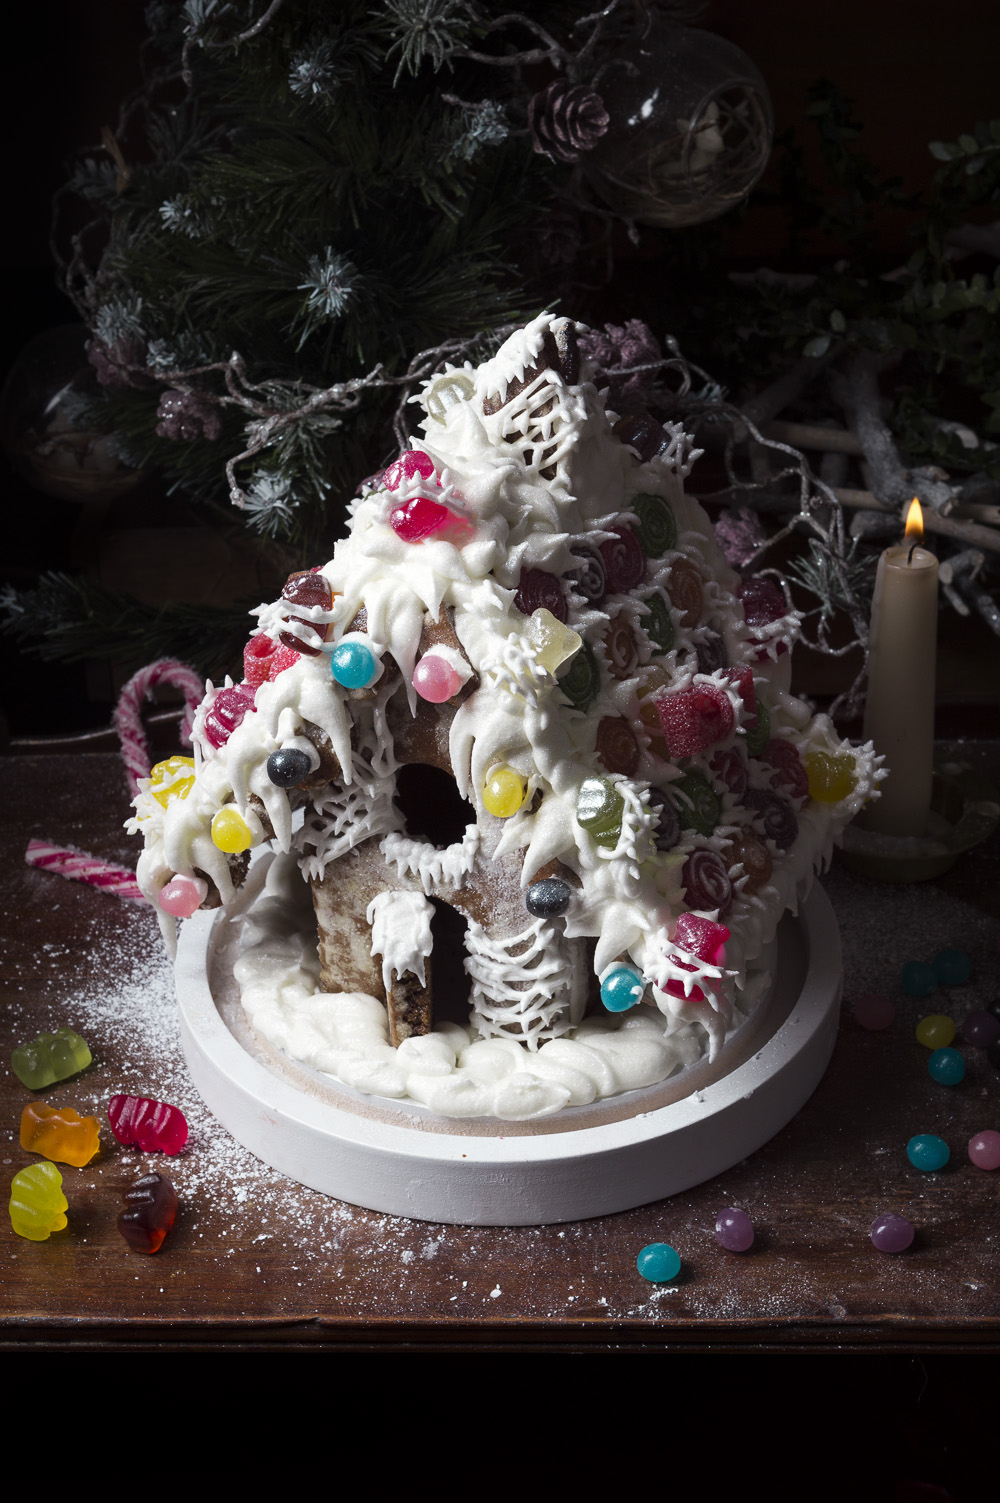 la-petite-maison-de-pain-depices-gingerbread-house-qui-a-vole-les-tartes-studio-de-creation